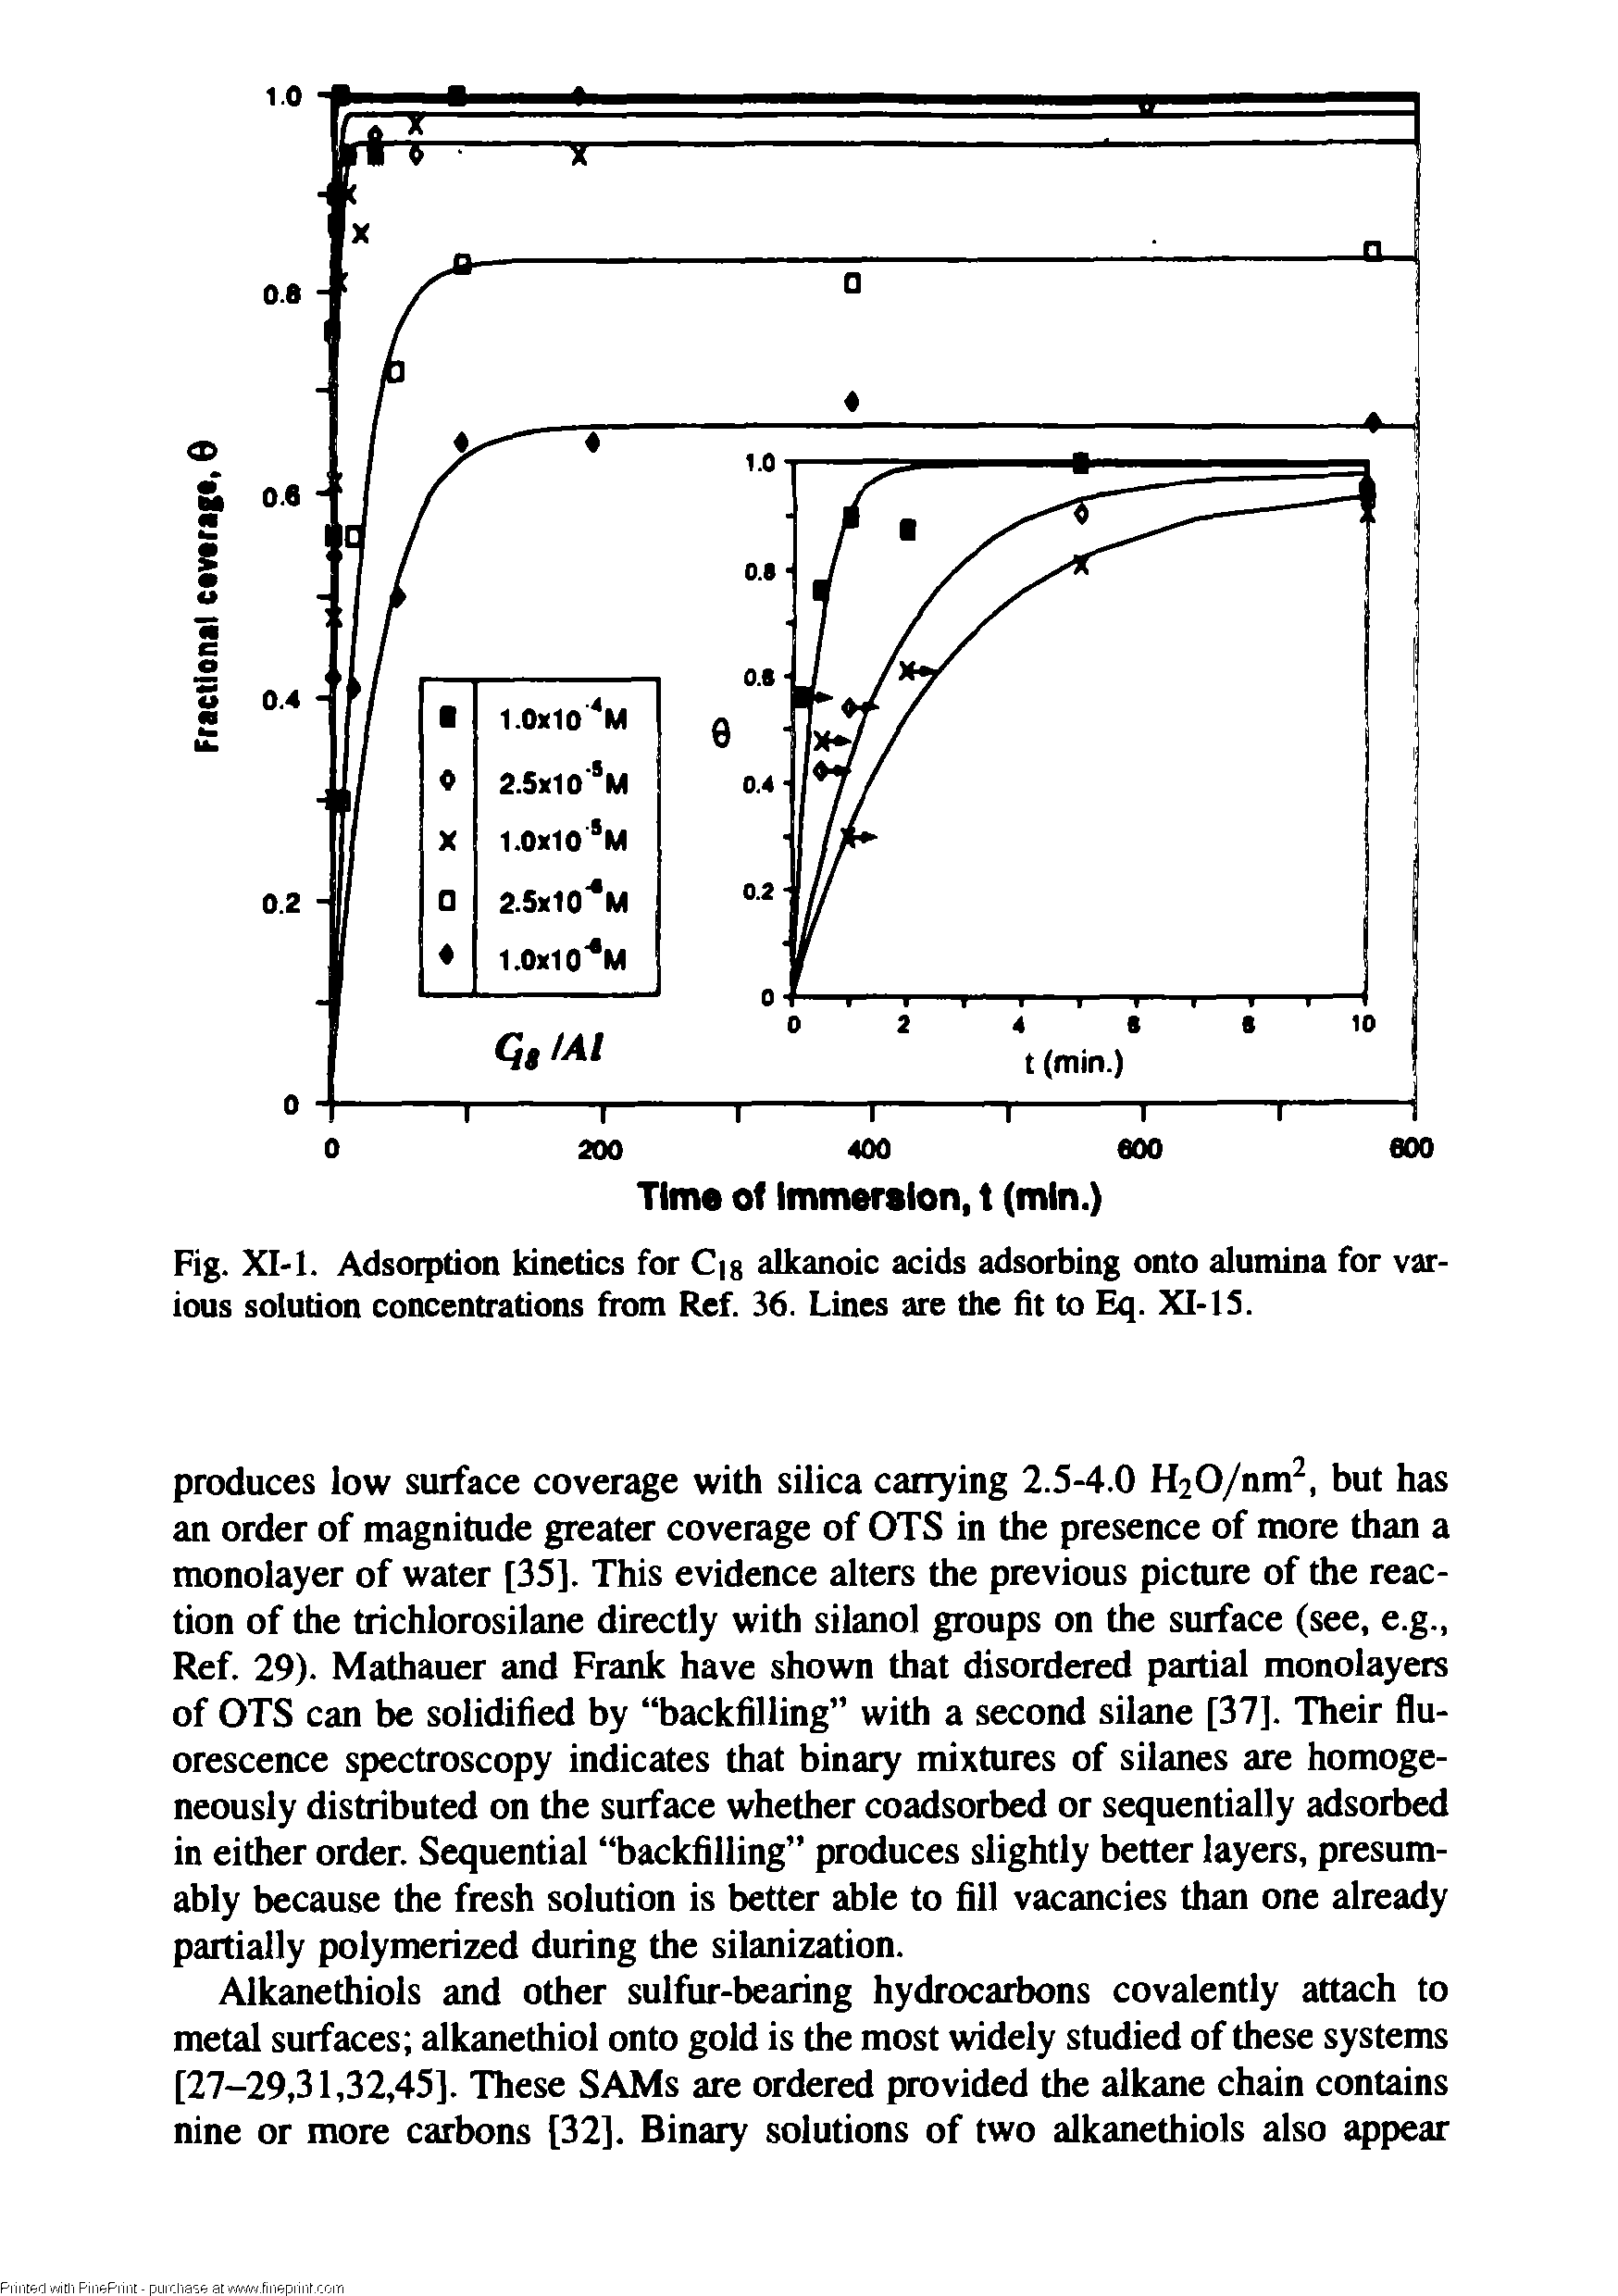 Fig. XI-1. Adsorption kinetics for C g alkanoic acids adsorbing onto alumina for various solution concentrations from Ref. 36. Lines are the fit to Eq. XI-IS.